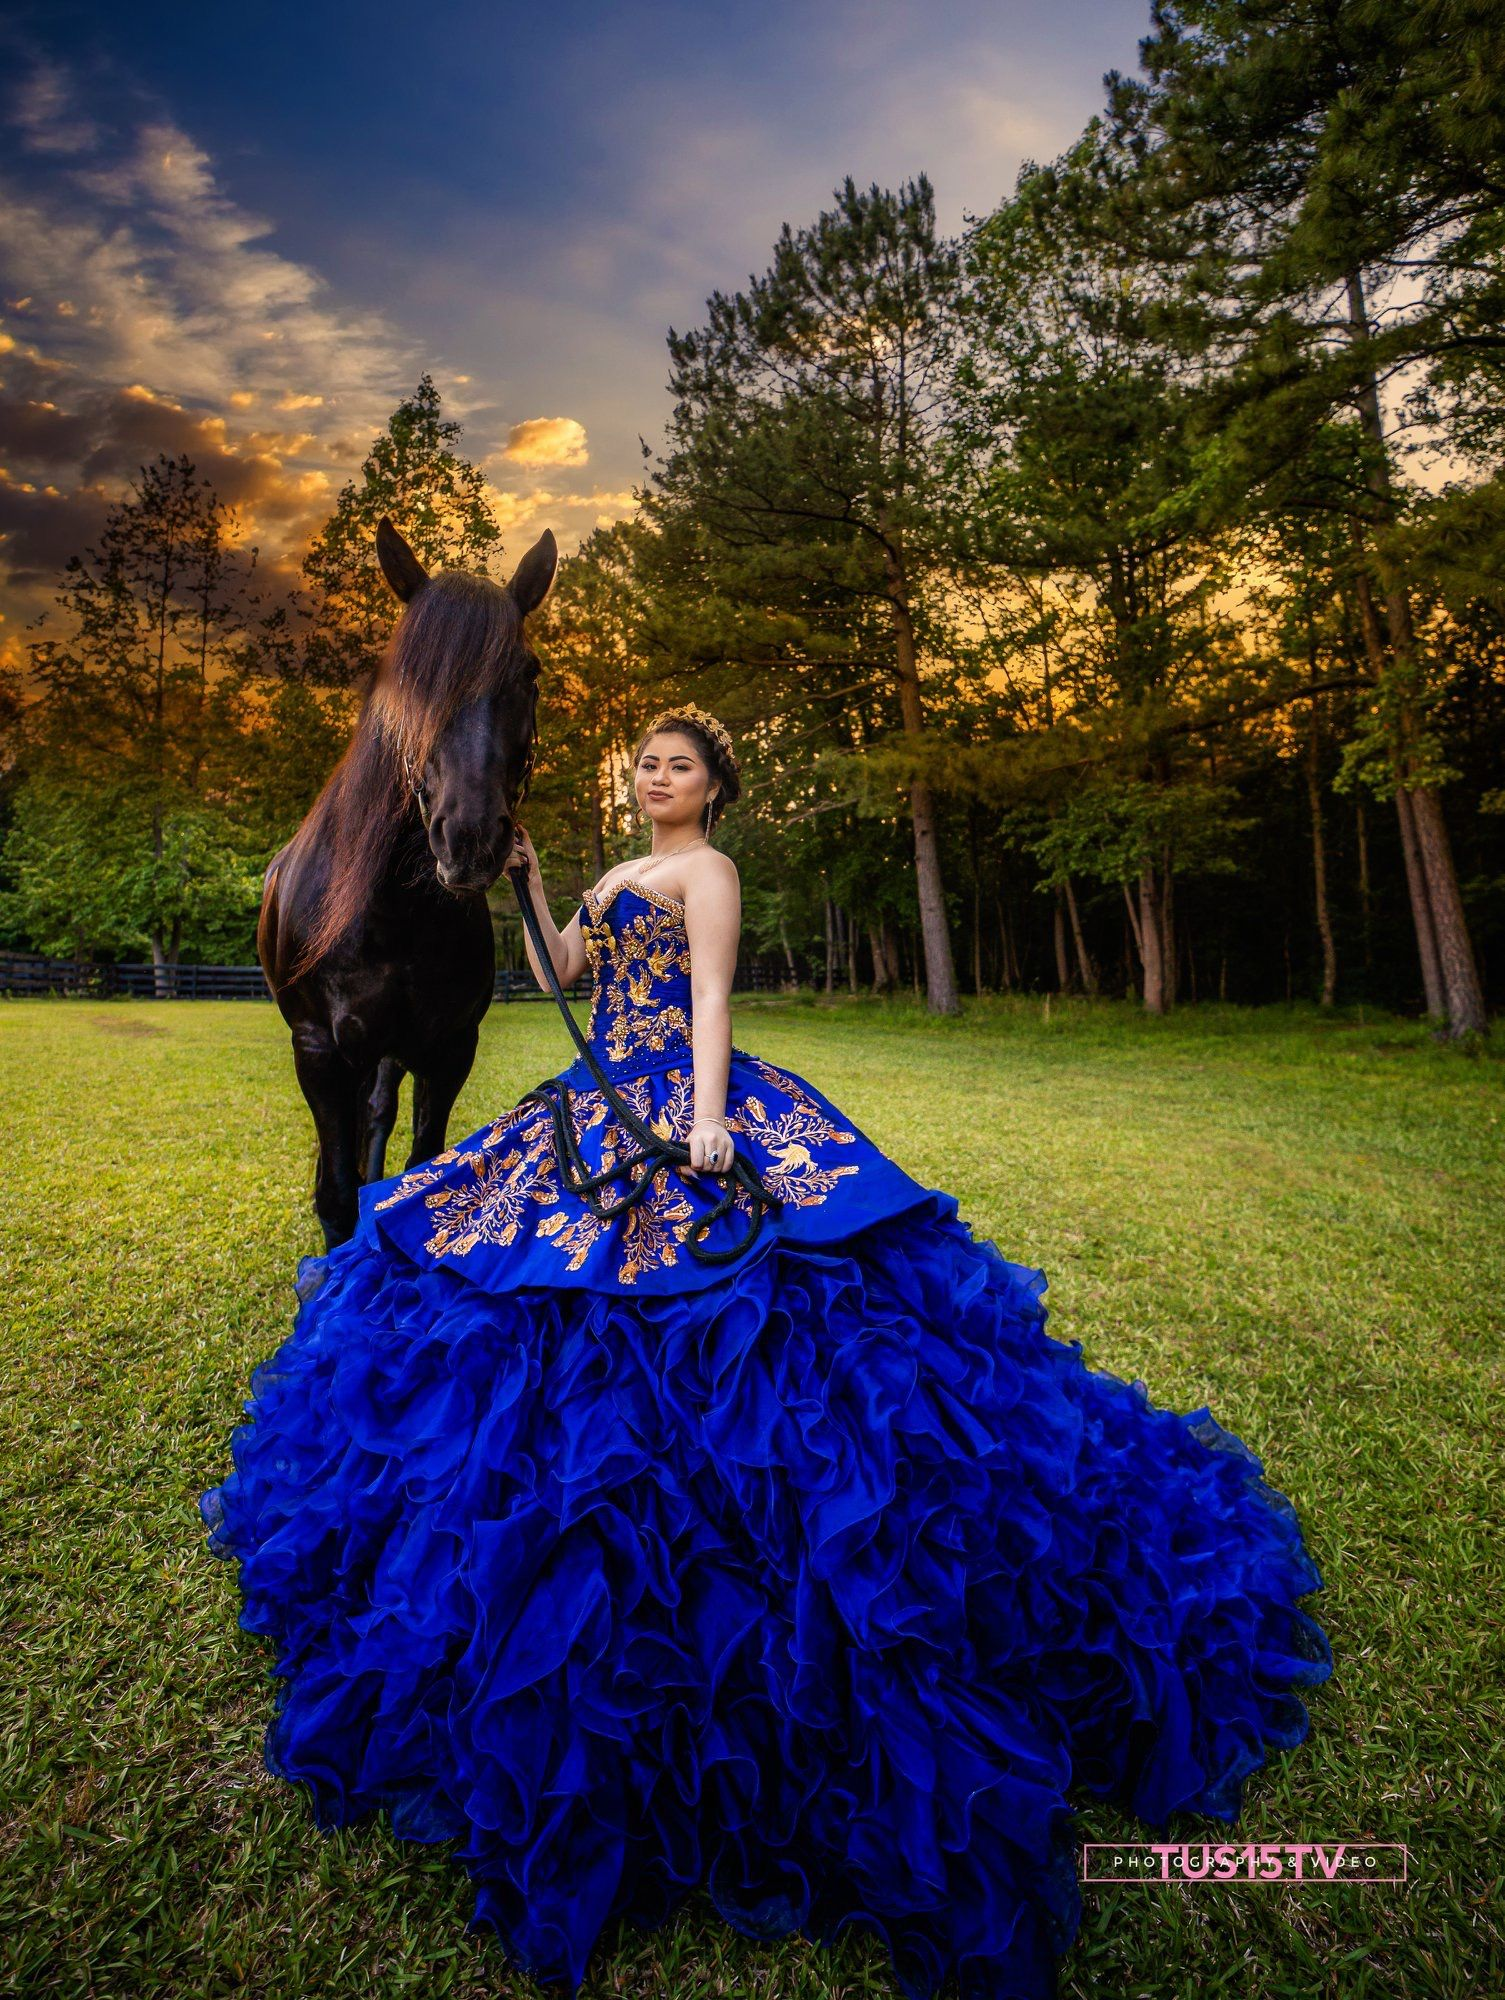 Quinceanera Dresses Photography And Video Raleigh Nc In 2020 Quinceanera Dresses Blue 15 Dresses Quinceanera Quinceanera Dresses [ 2000 x 1505 Pixel ]